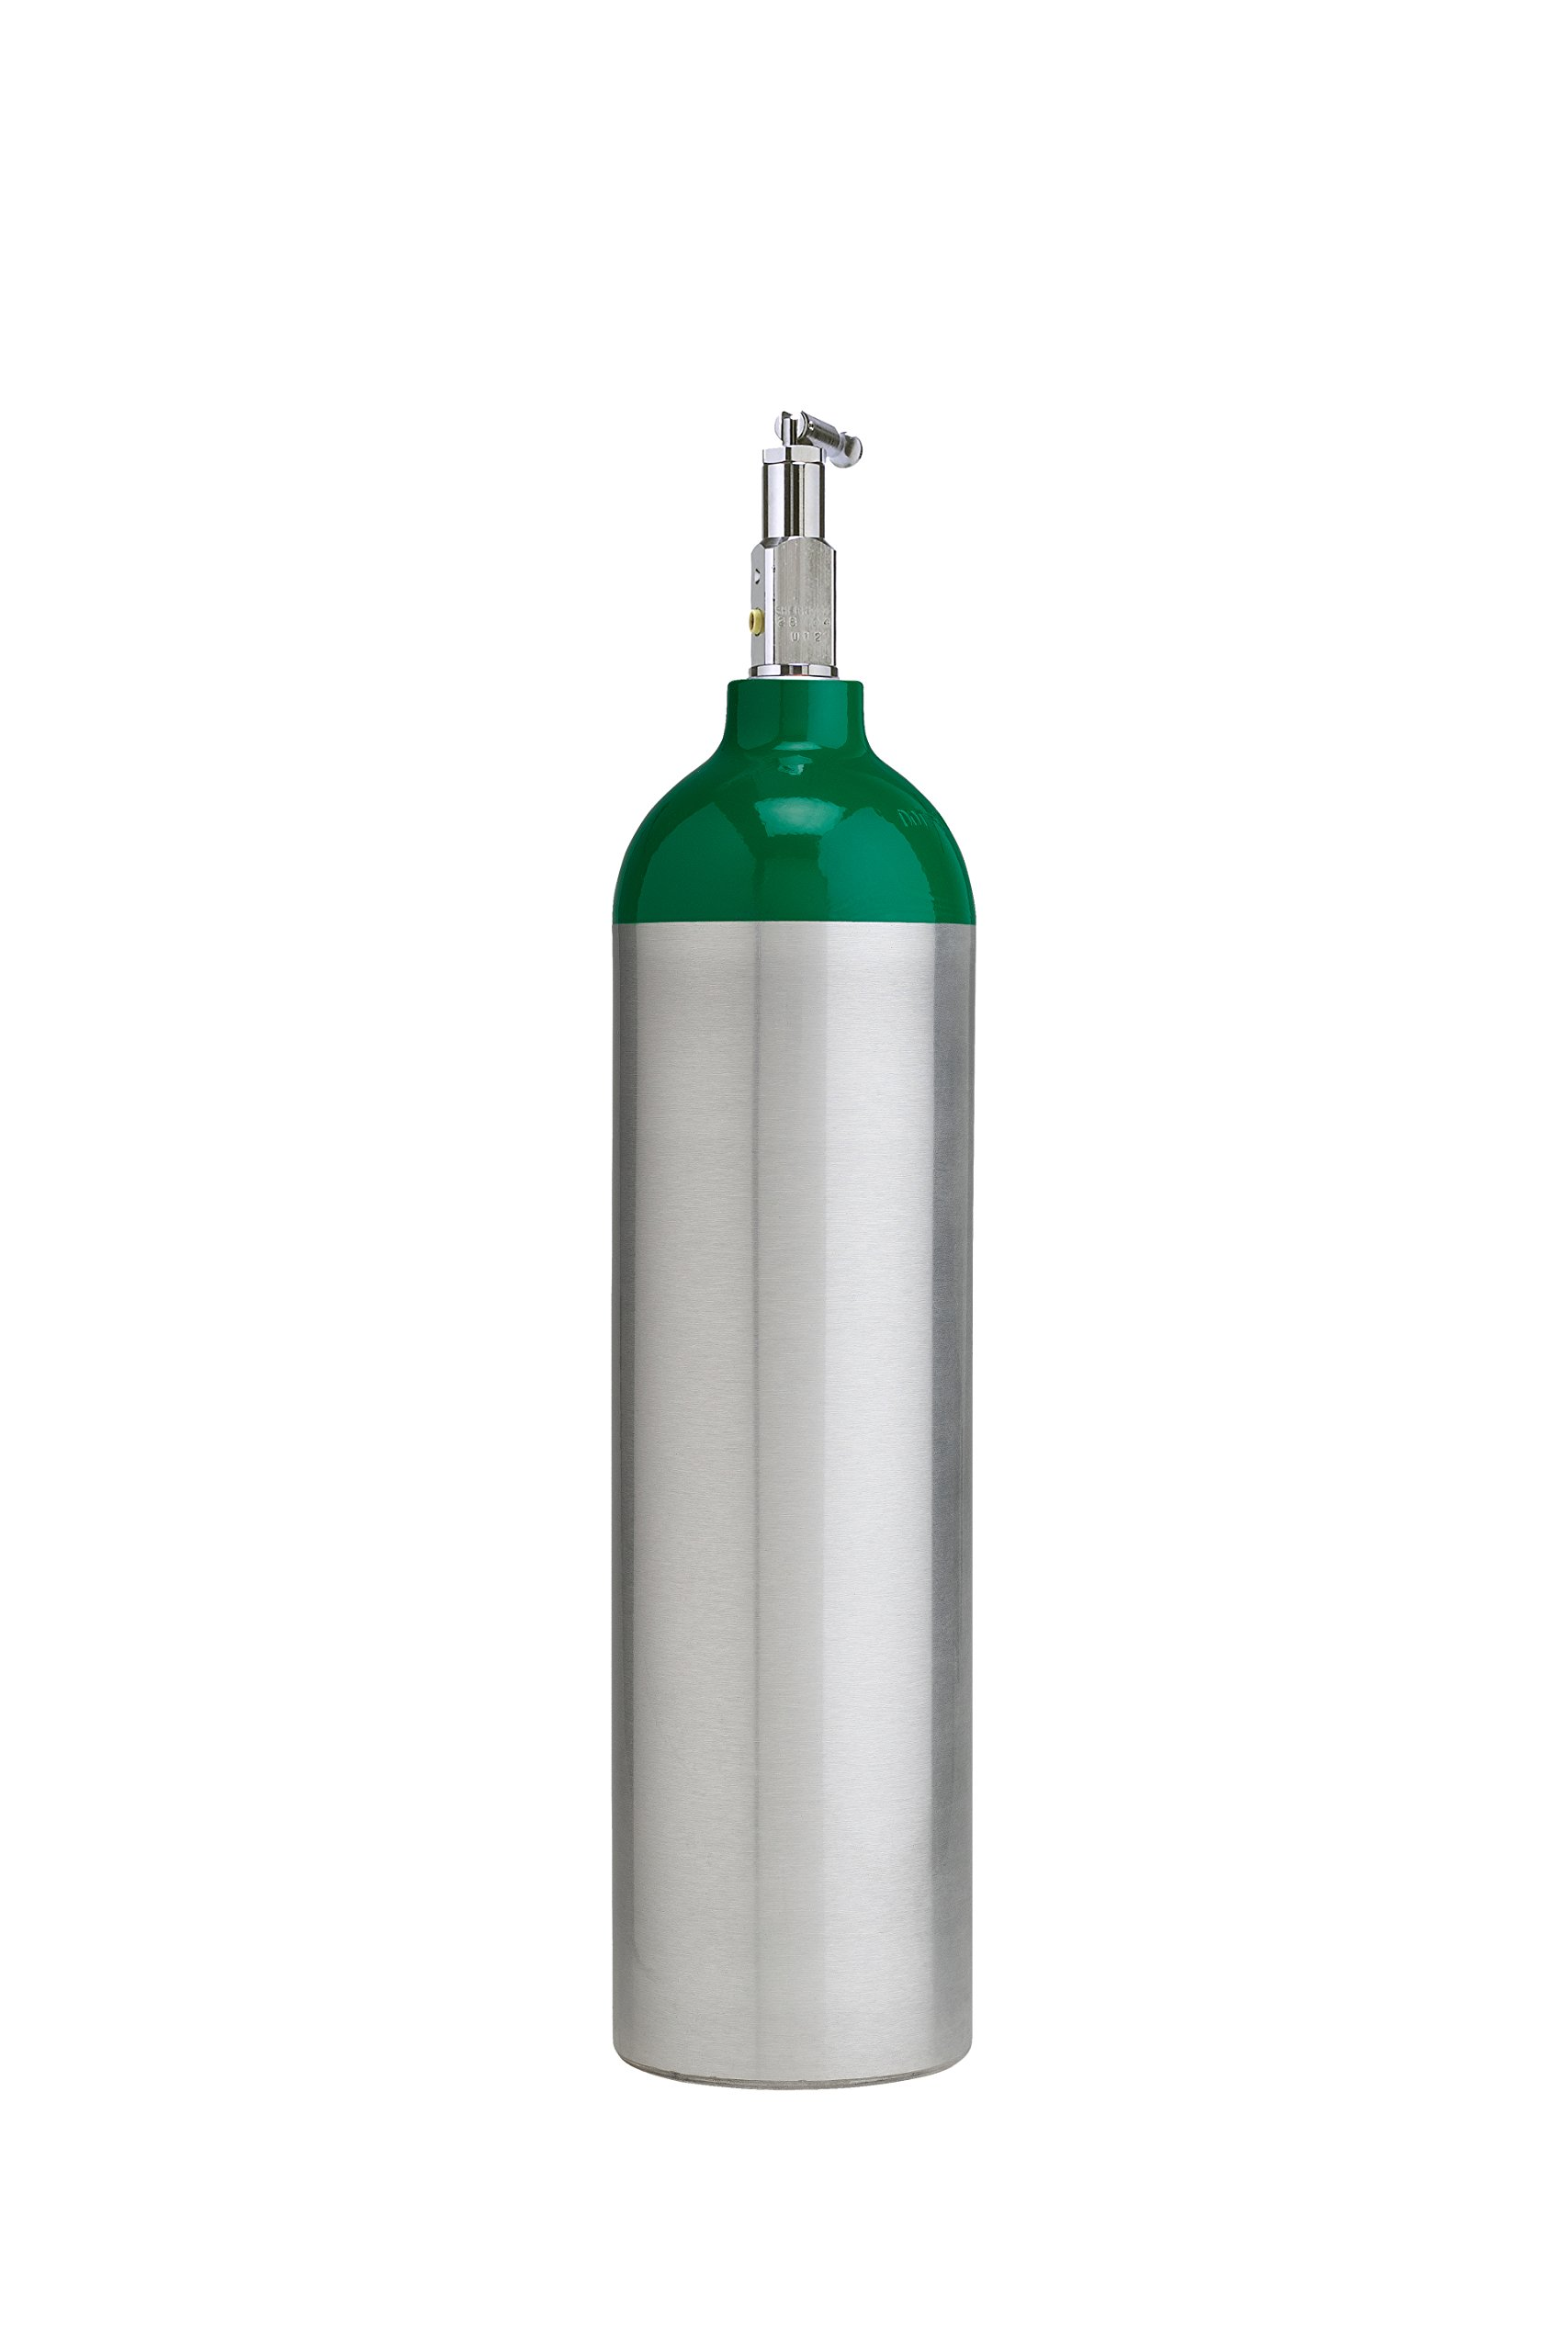 Cyl-Tec Medical D Oxygen Cylinder with CGA 870 Toggle Valve